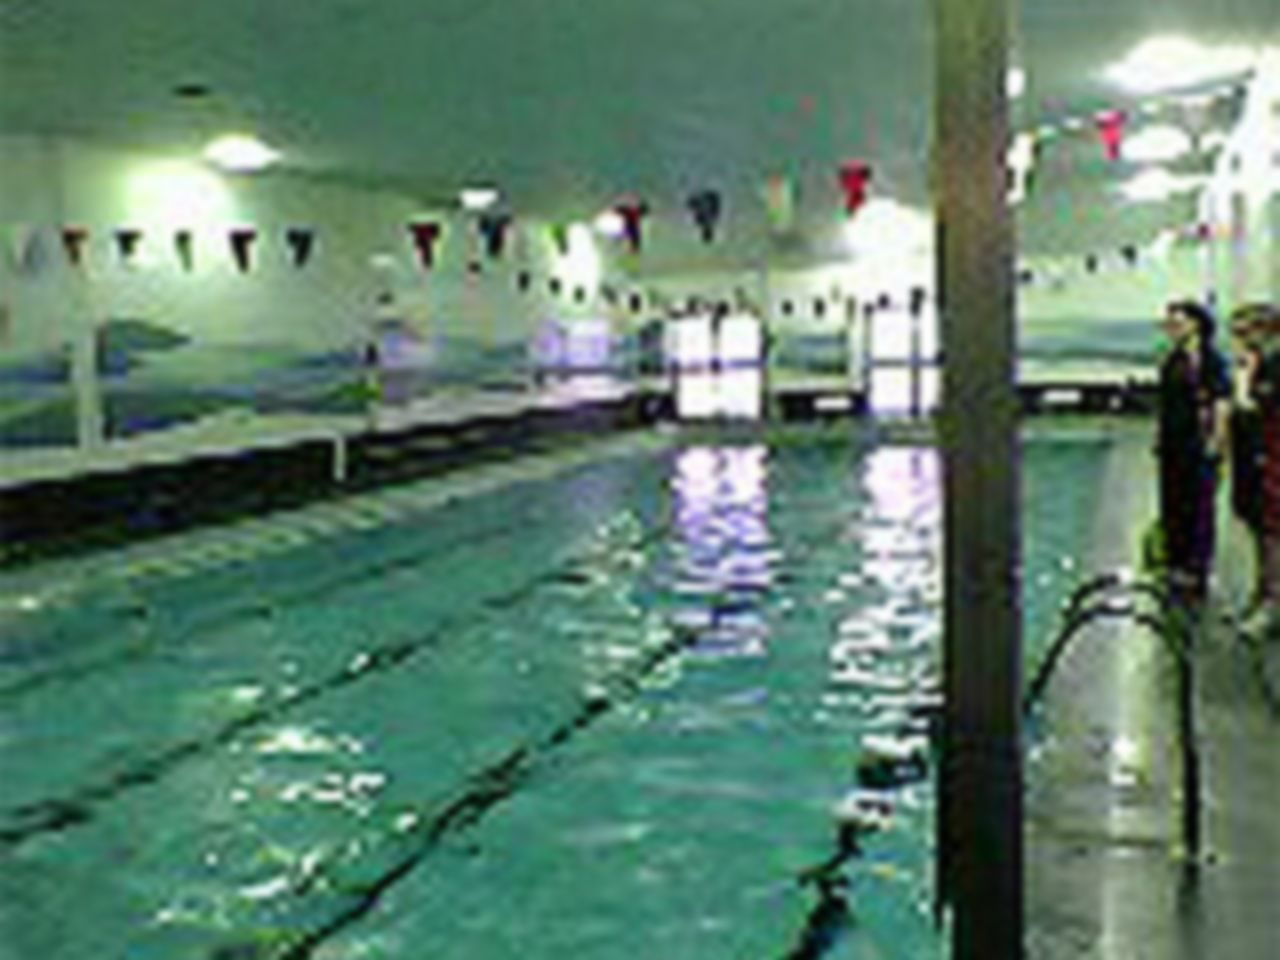 Brechin high school pool flexible gym passes dd9 dundee - Dundee swimming pool opening times ...